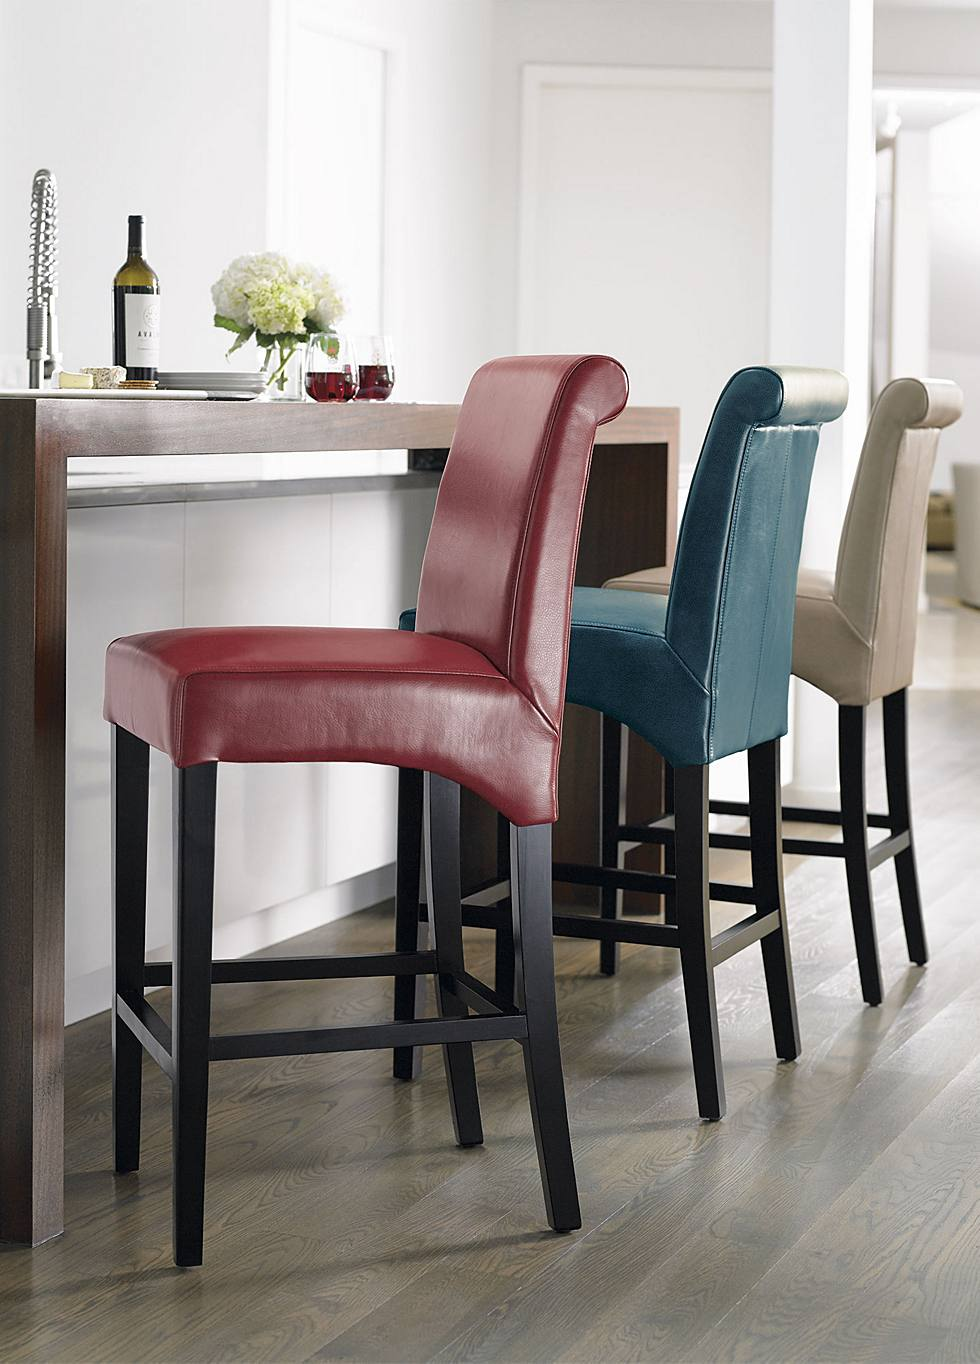 Fine Blend Valencia Combines Parsons Chair Style And Rich Color With Espresso Legs